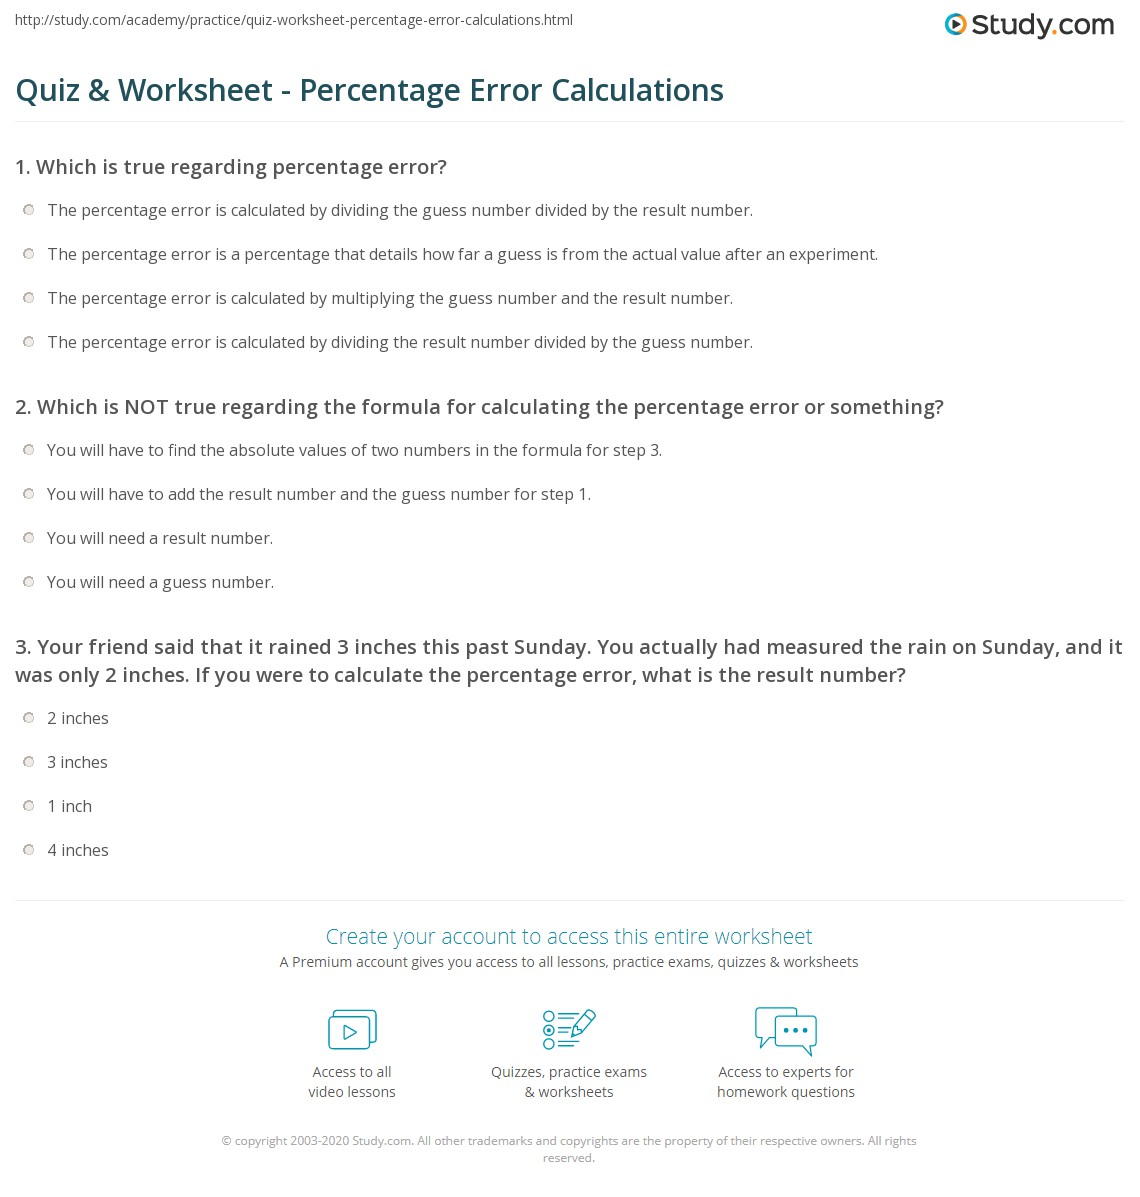 Quiz & Worksheet - Percentage Error Calculations | Study.com